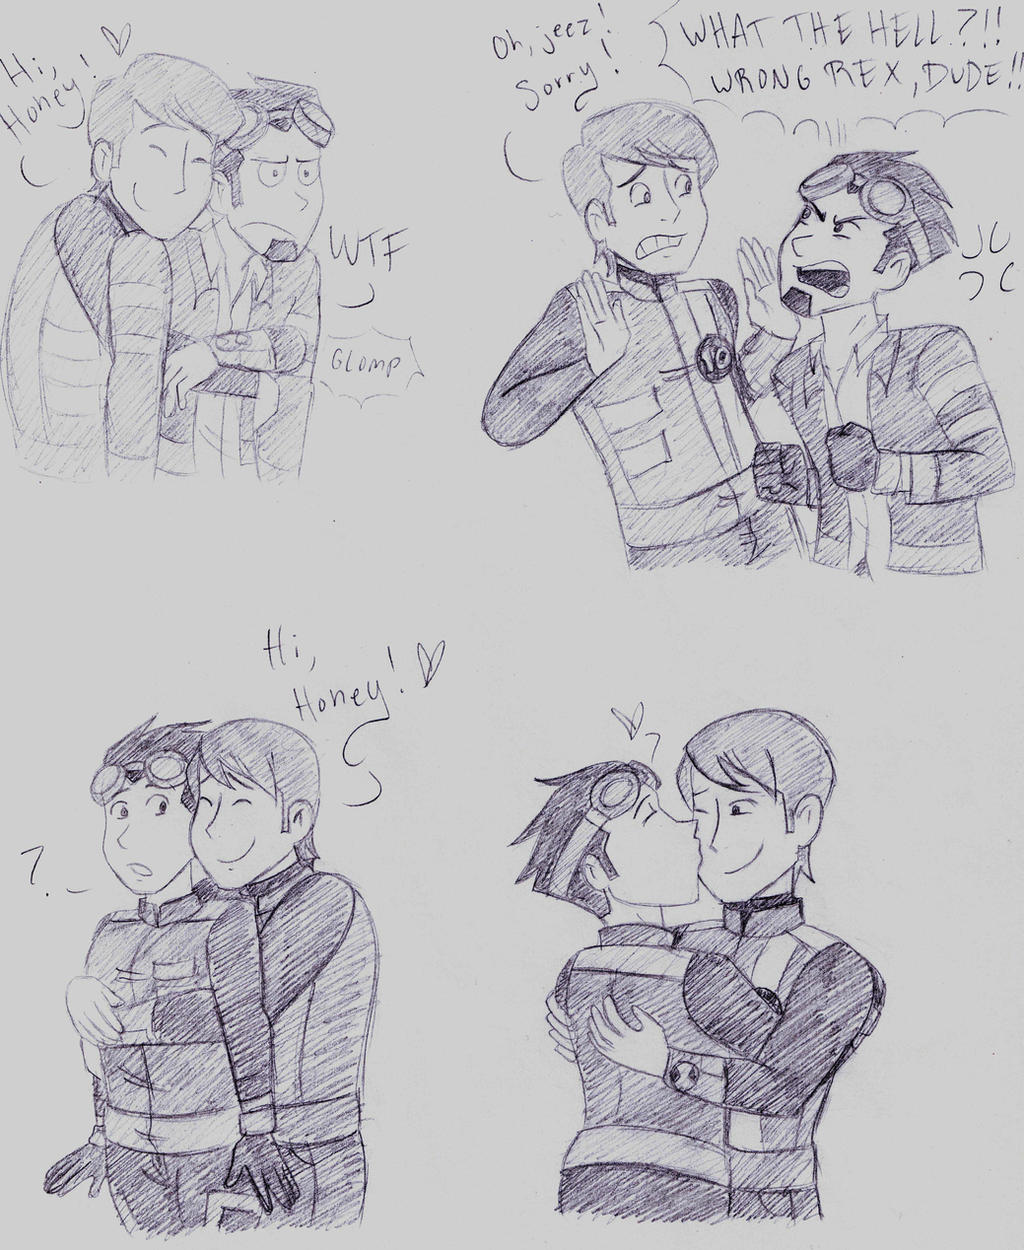 Wrong Rex, dude! by dreamer45